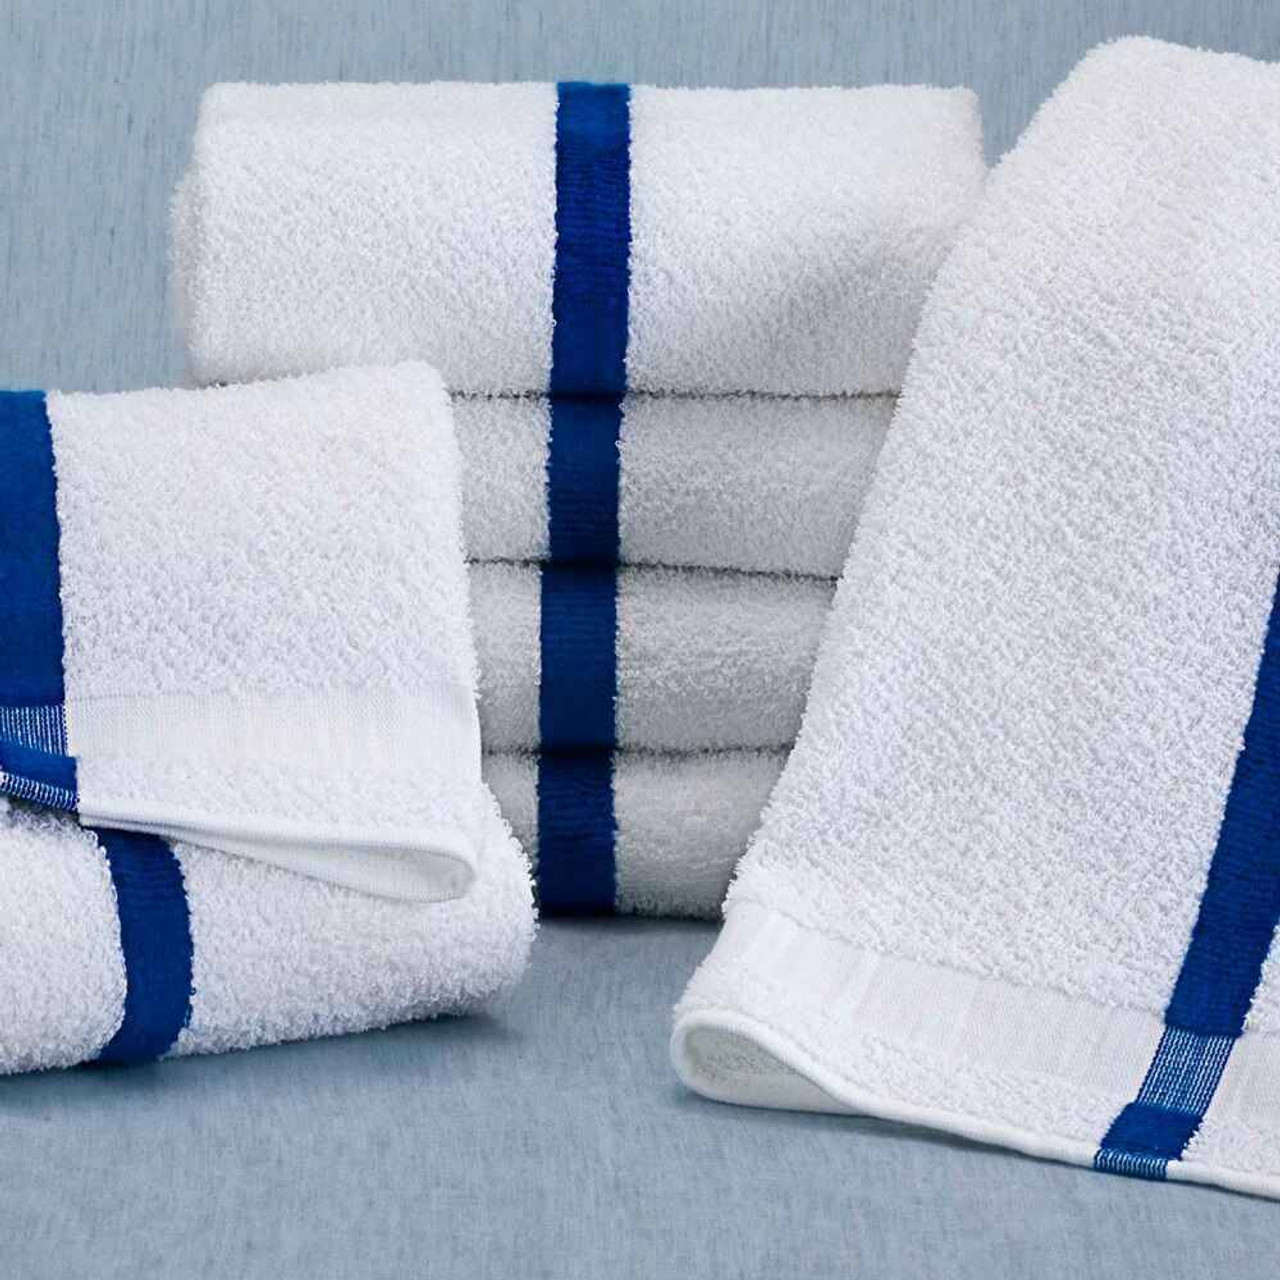 WestPoint/Martex Blue Striped Pool towel from Martex / Westpoint